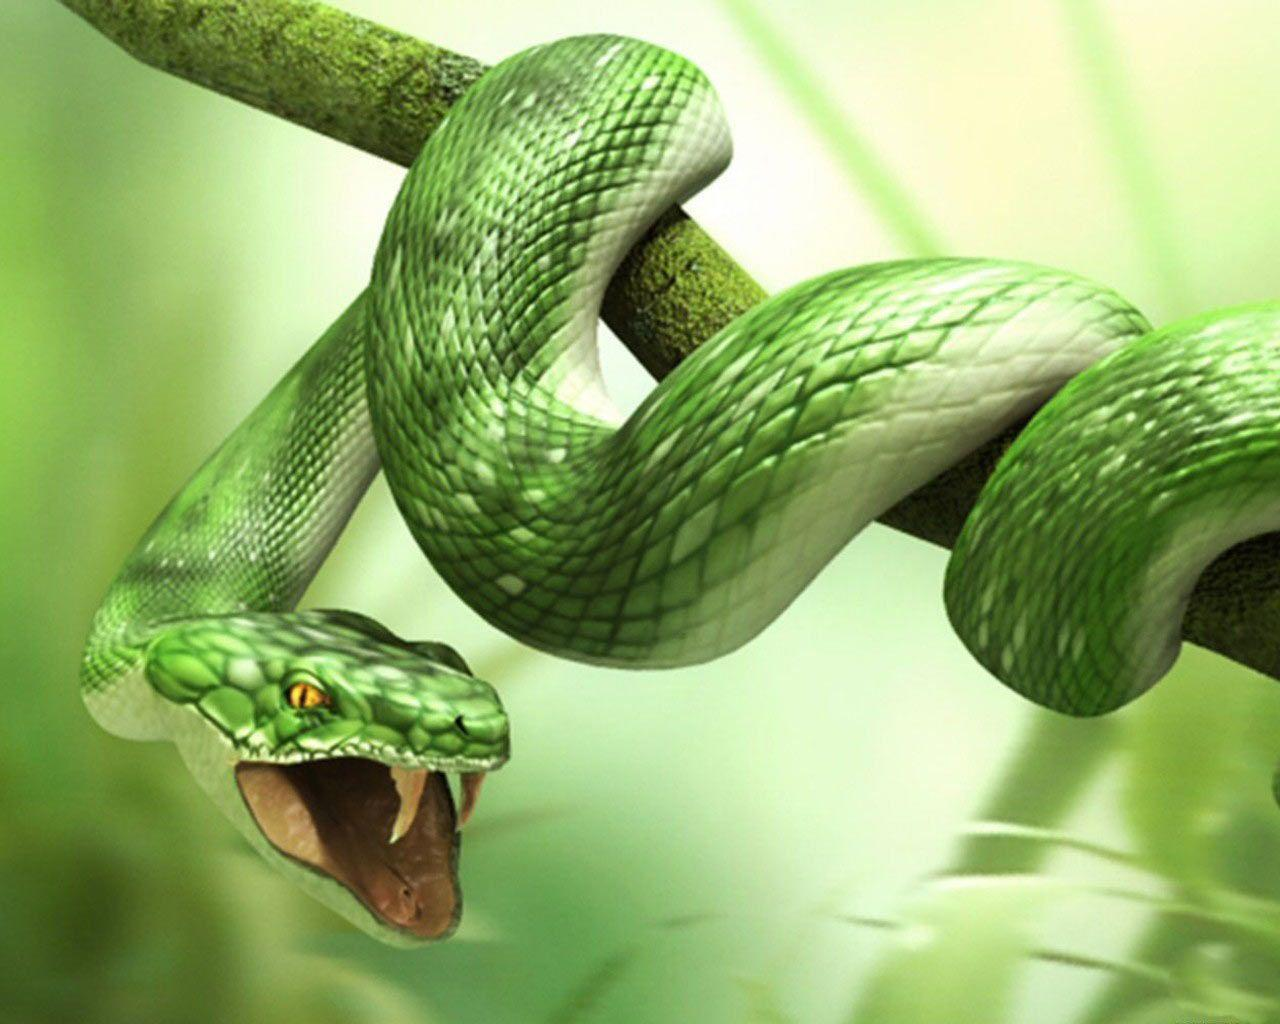 Green 3d Snake HD Wallpapers - HD Wallpapers Inn